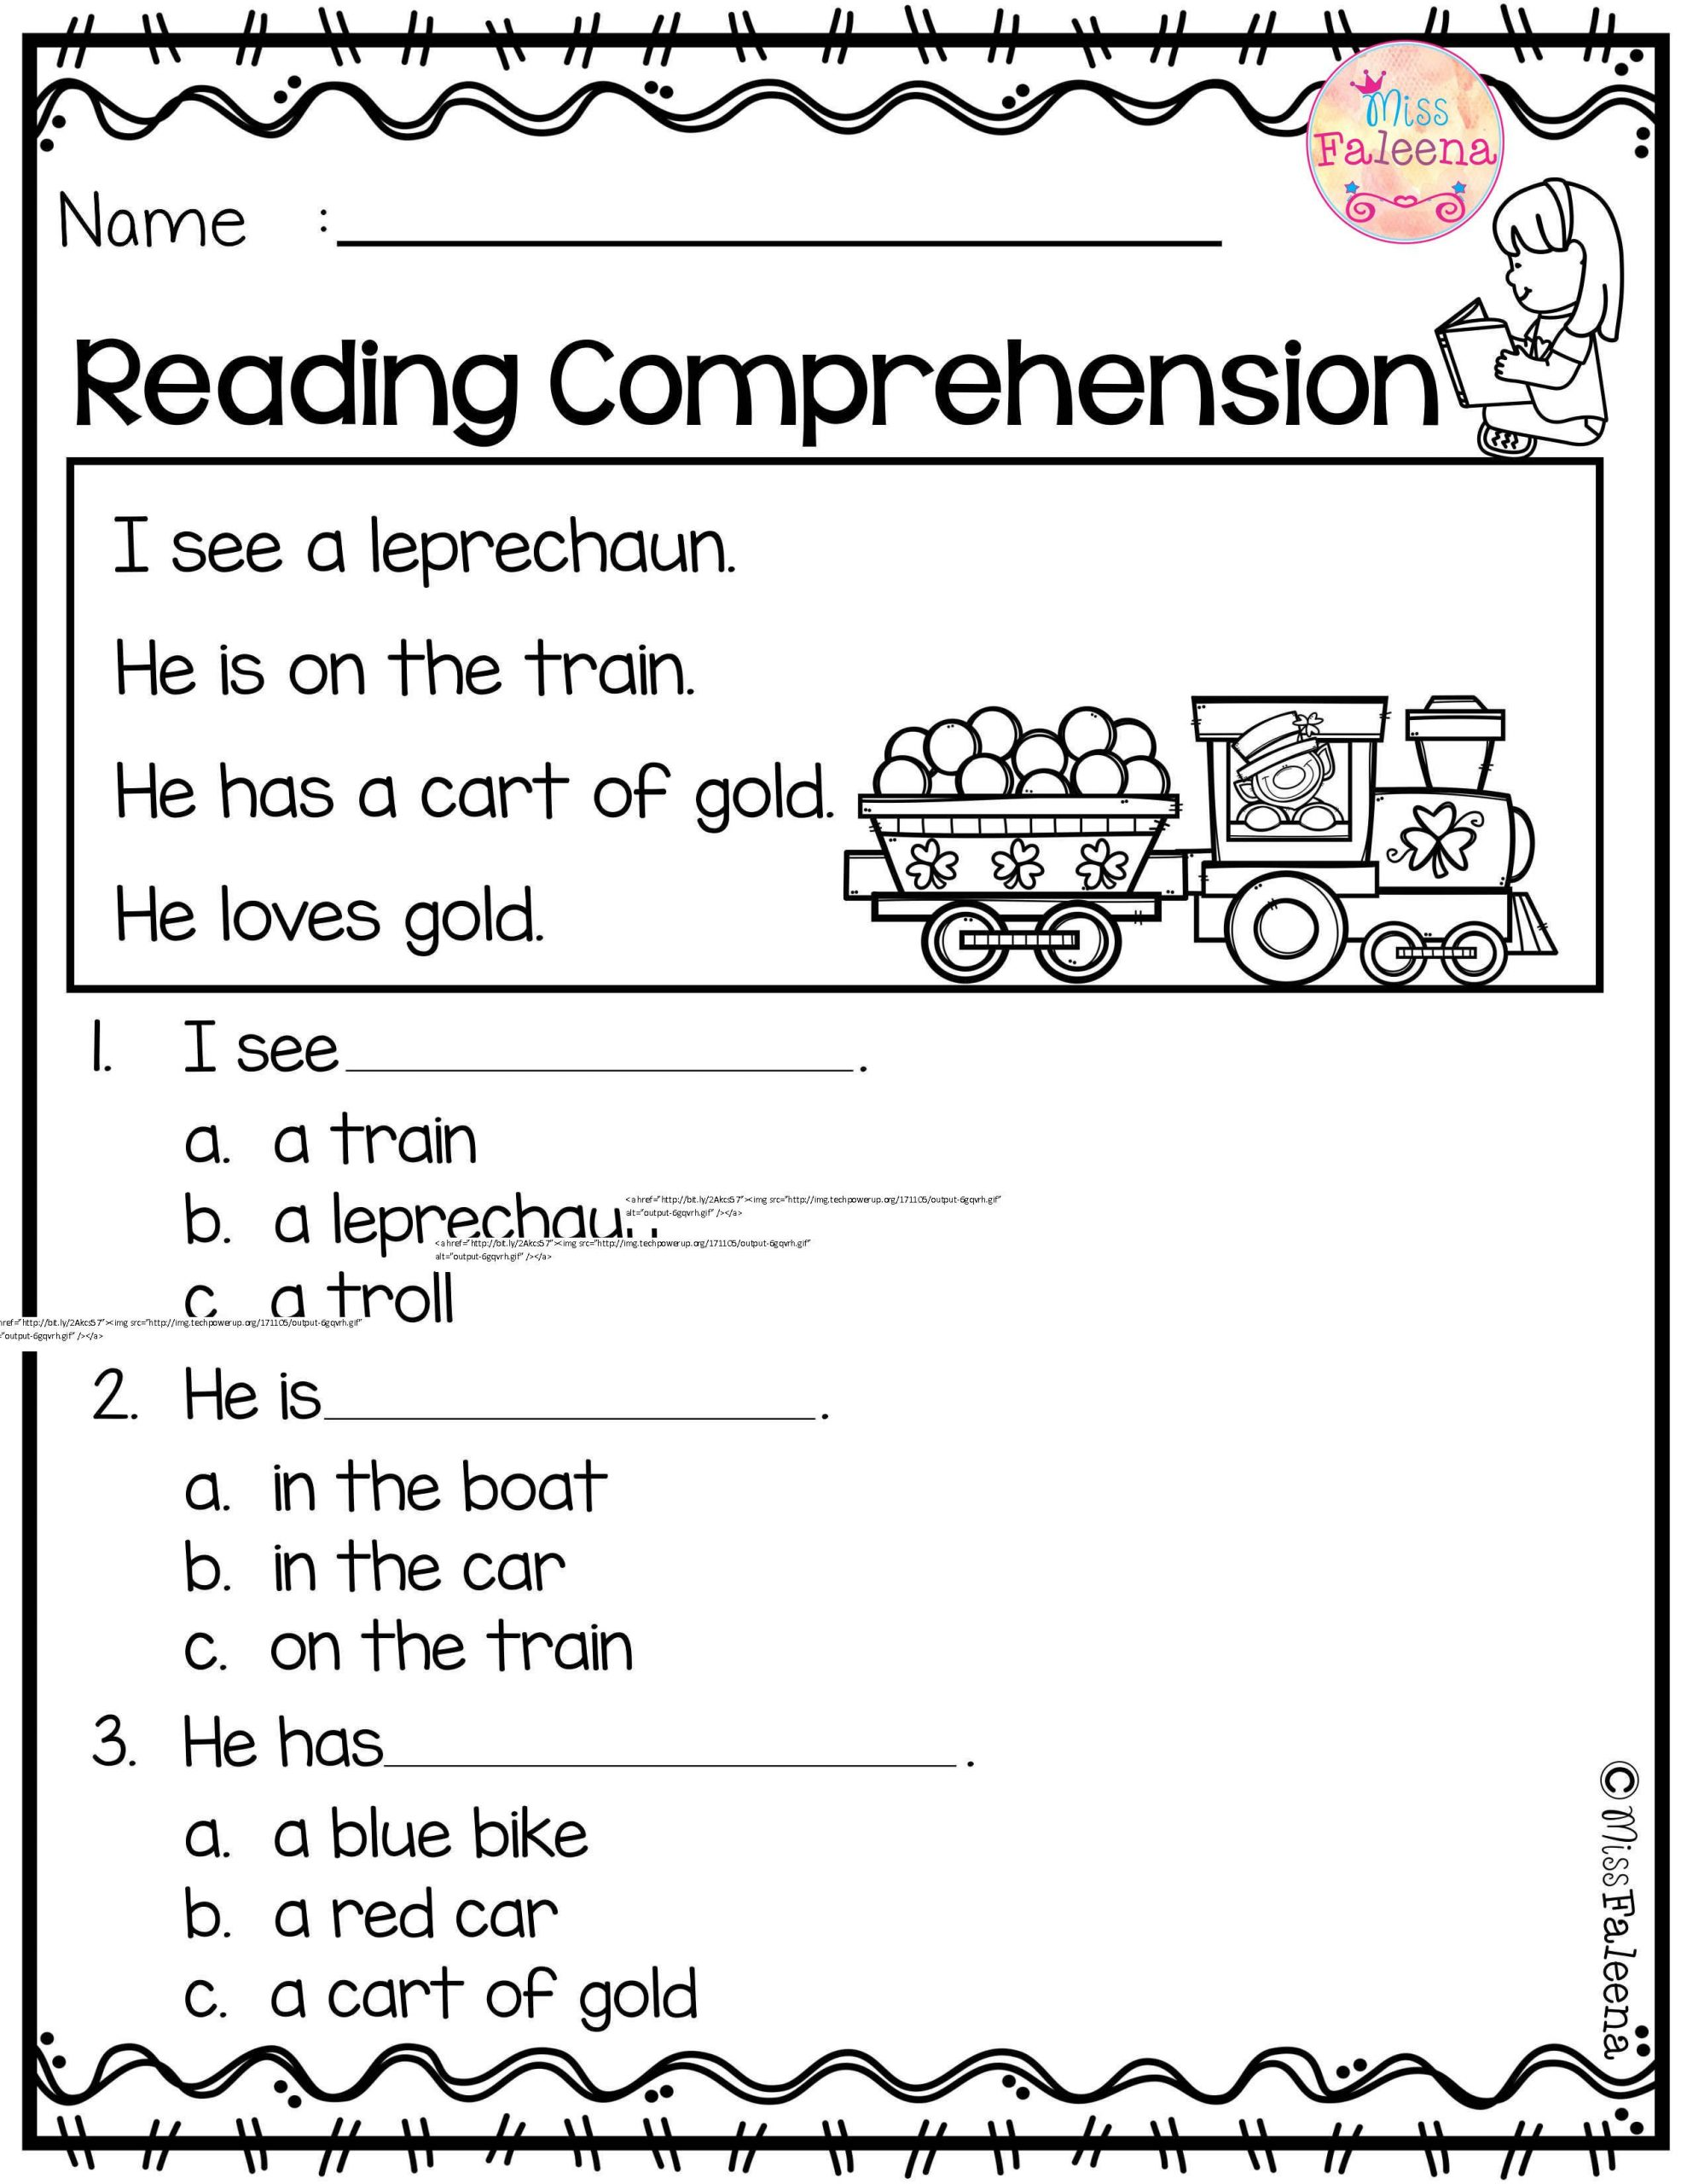 March Reading prehension is suitable for Kindergarten